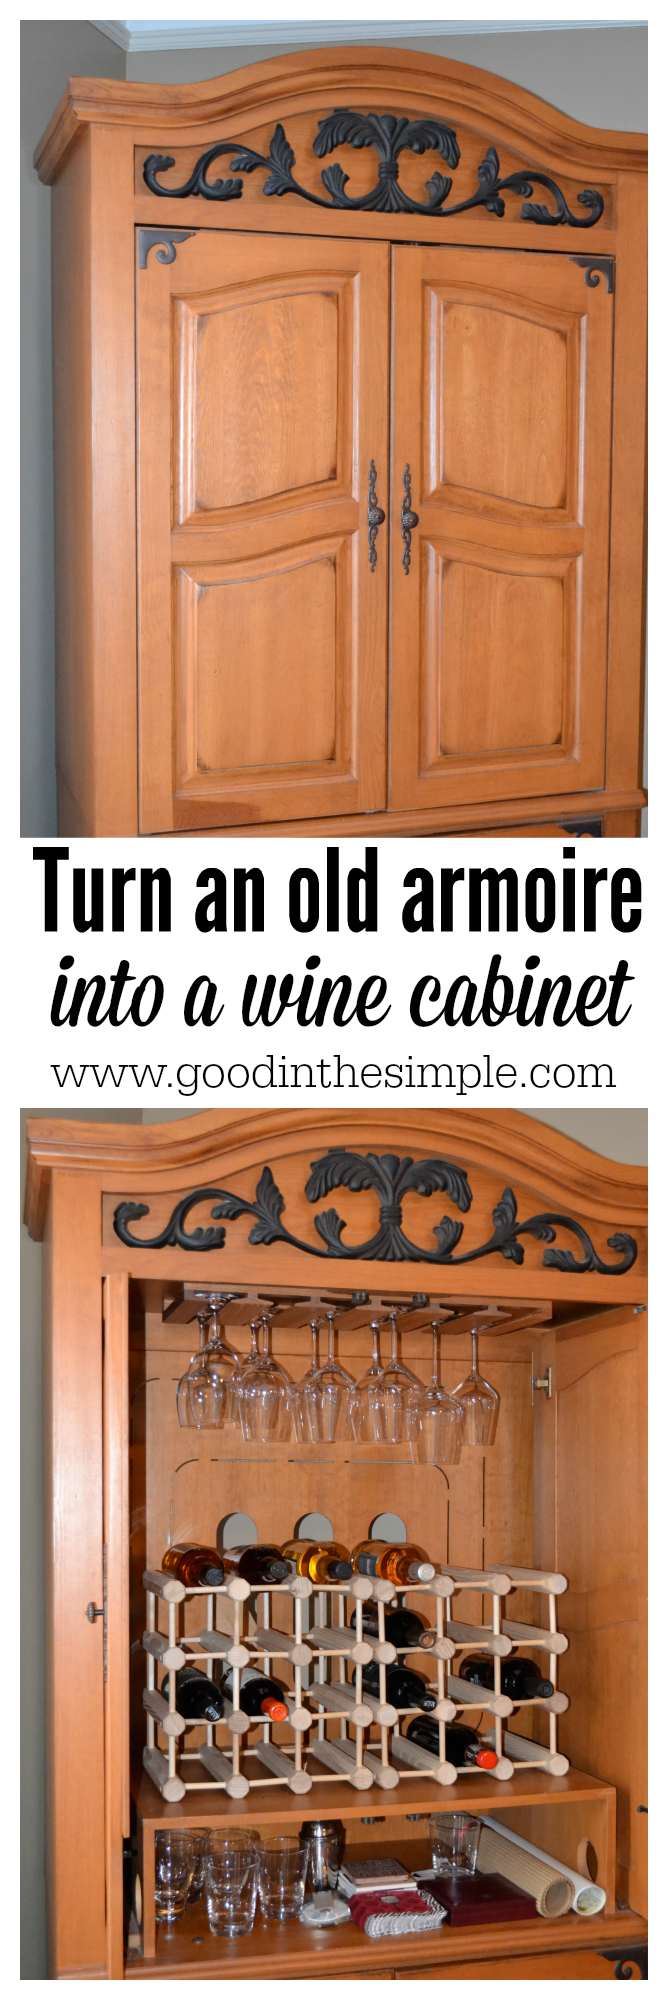 Simple DIY project: turn an old television armoire into a wine/liquor cabinet in a few easy steps.